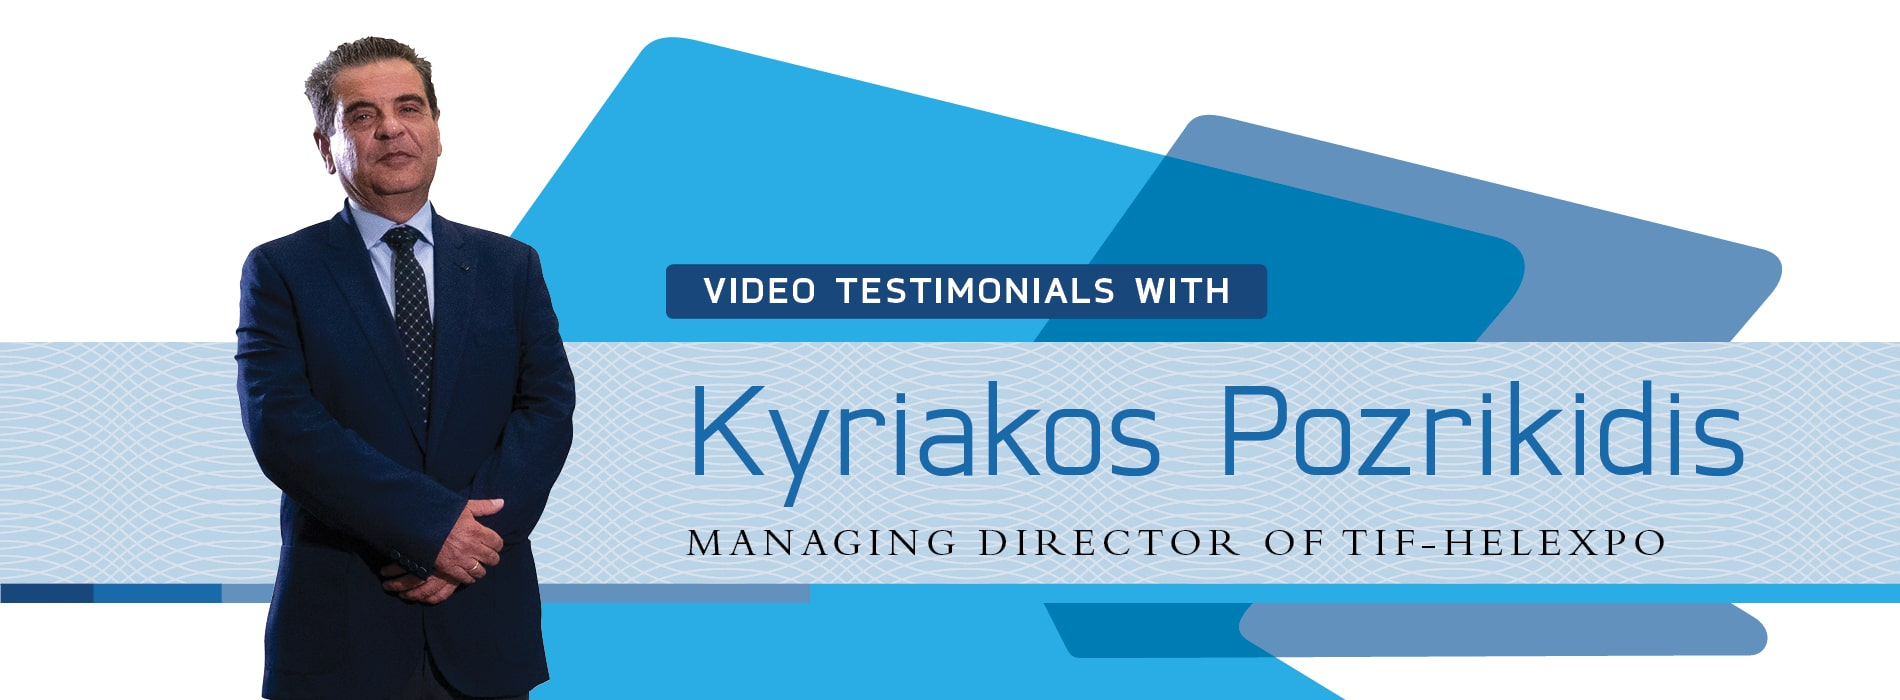 Testimonial Videos: Kyriakos Pozrikidis, Managing Director of TIF-Helexpo